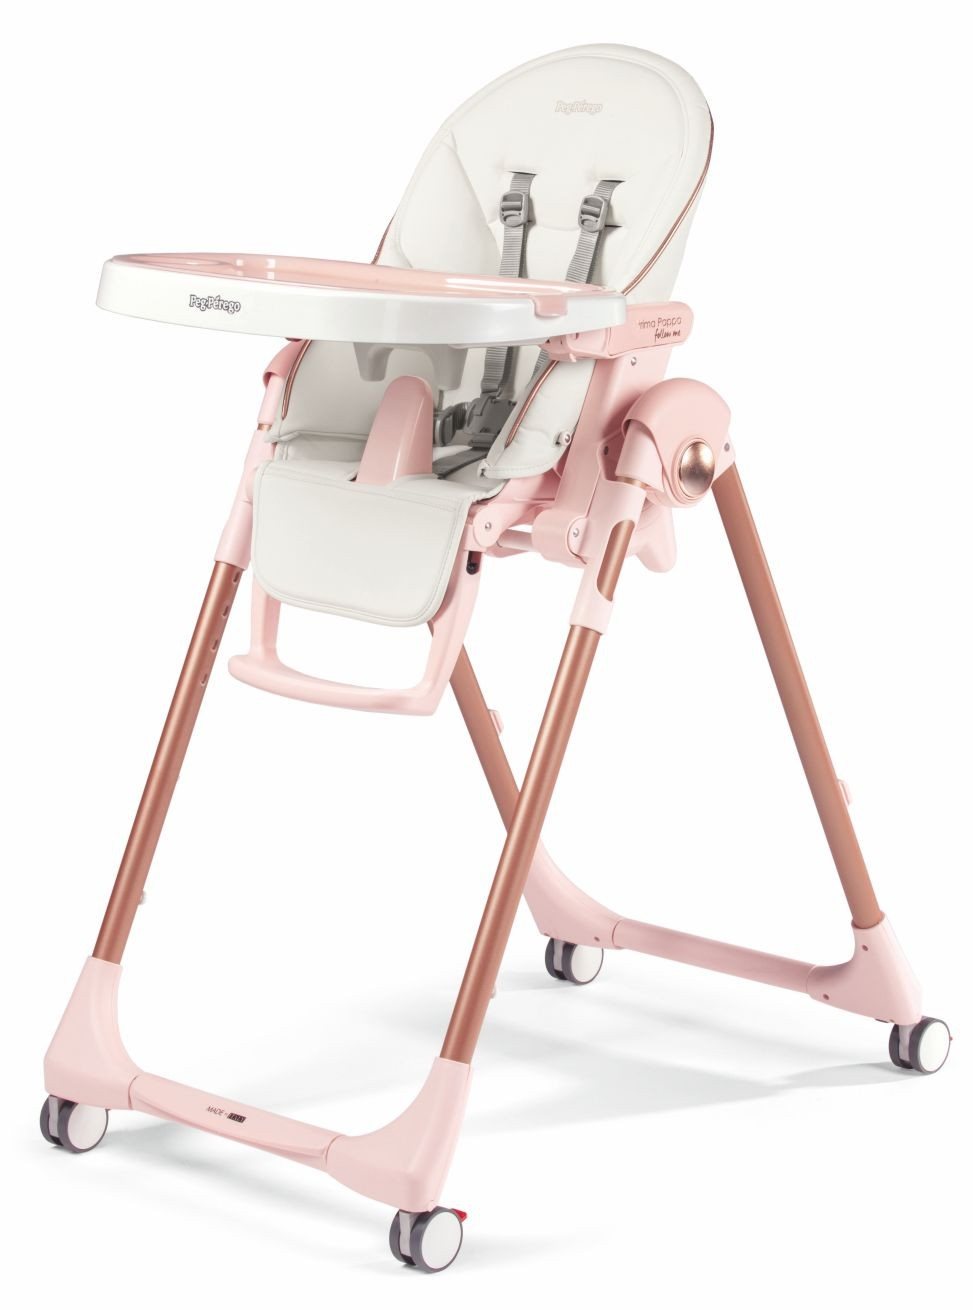 Peg Perego Prima Pappa Zero3 High Chair - Mon Amour